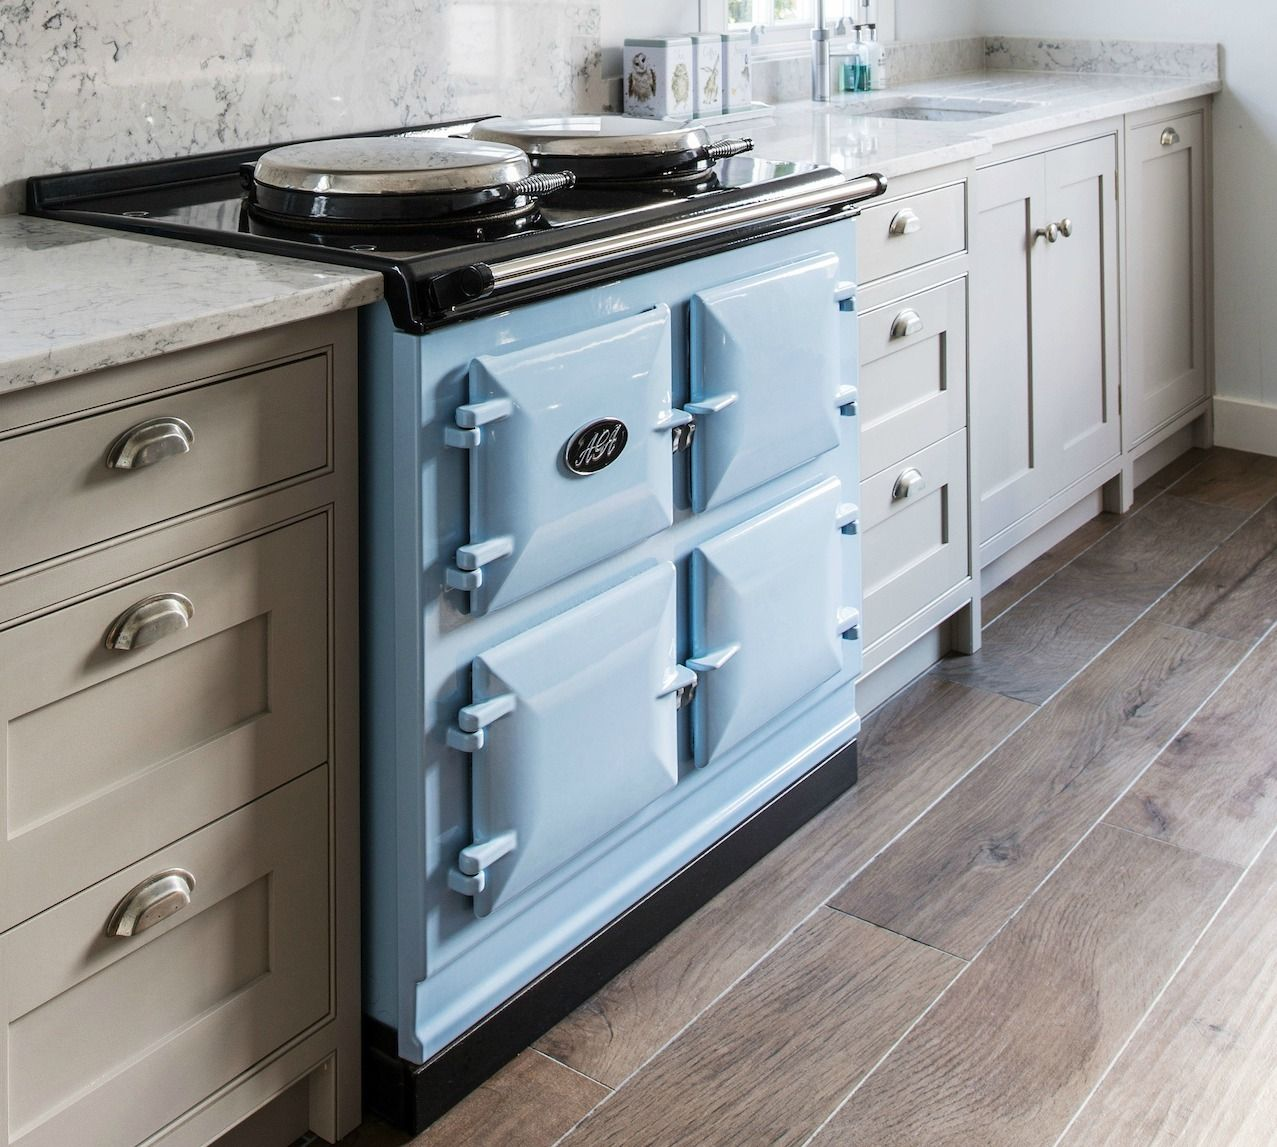 Modern Country Kitchen Blue duck egg blue aga | kombuis | pinterest | duck egg blue, aga and